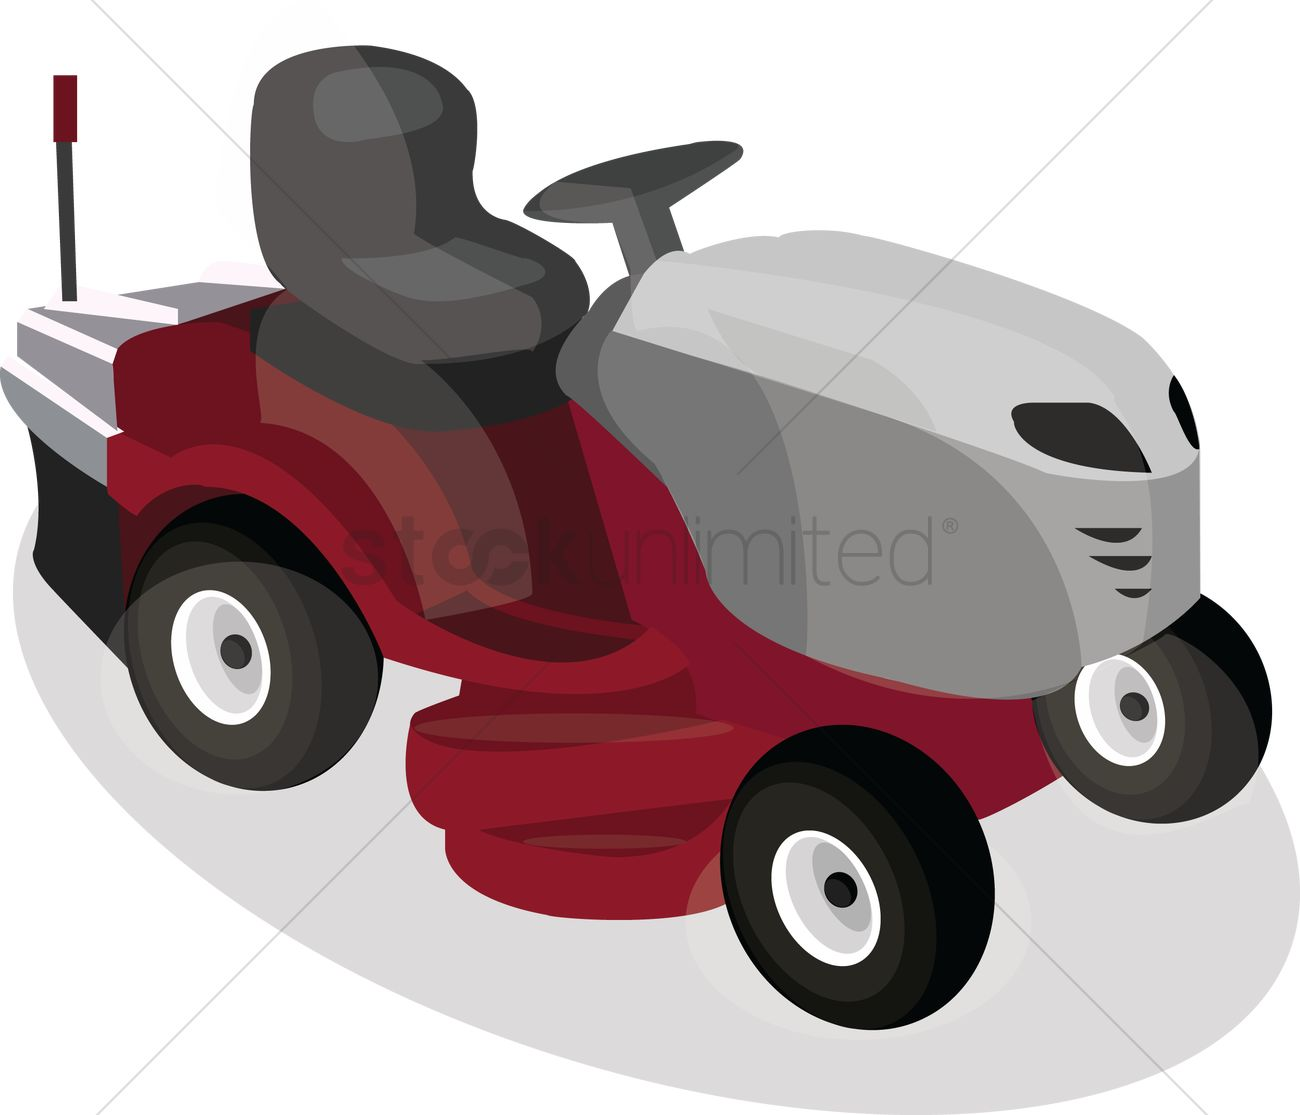 1300x1115 Free Lawn Mower Vector Image